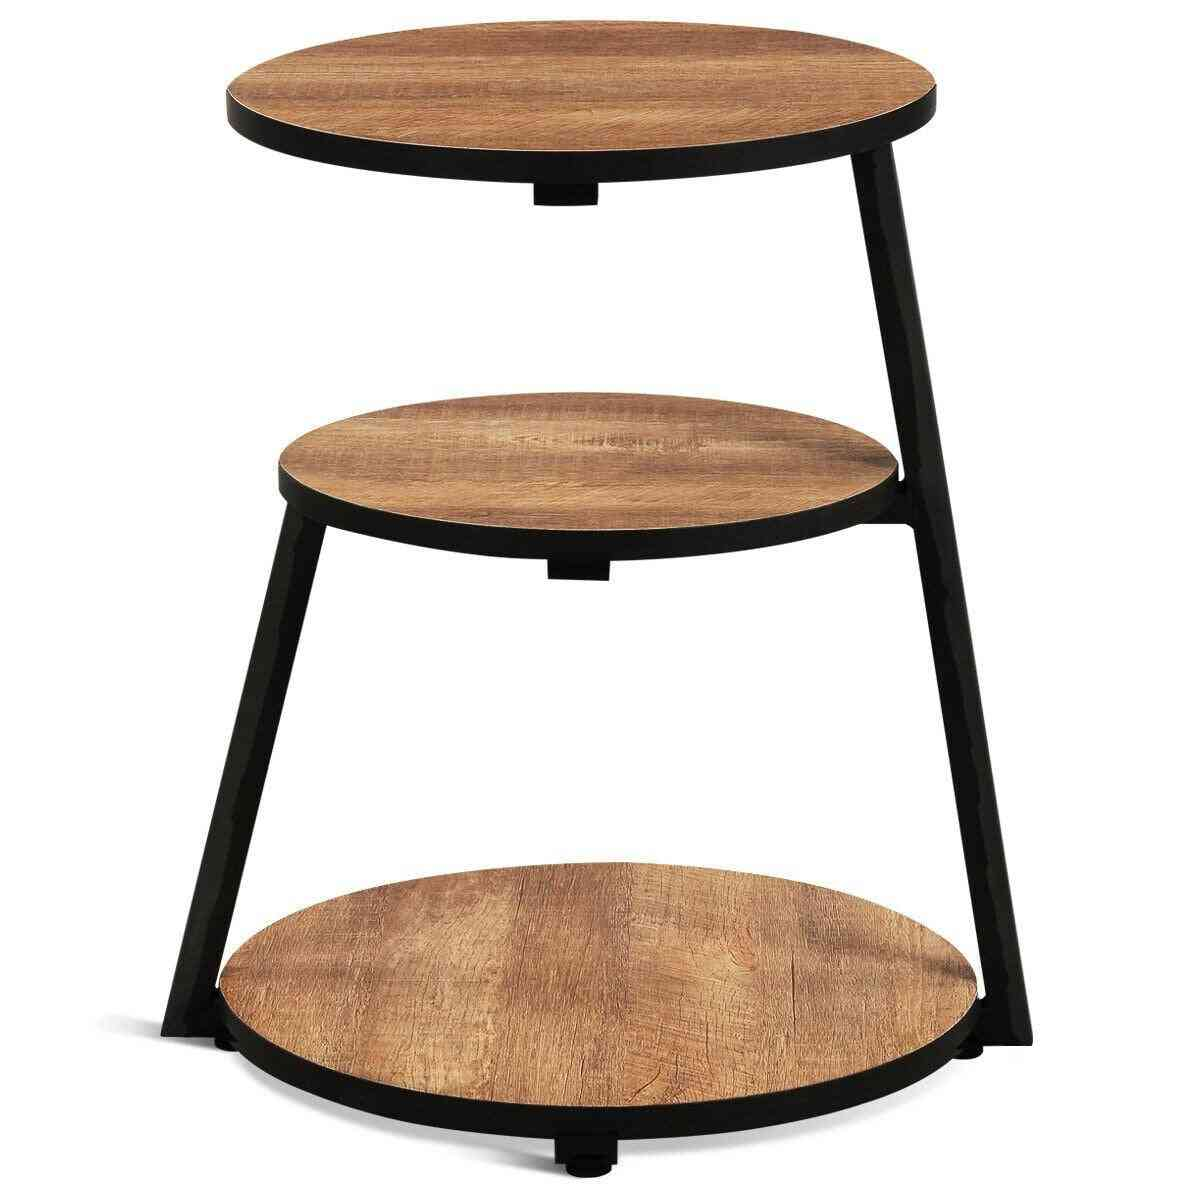 Round Shaped, 3-tier Sofa Side Table